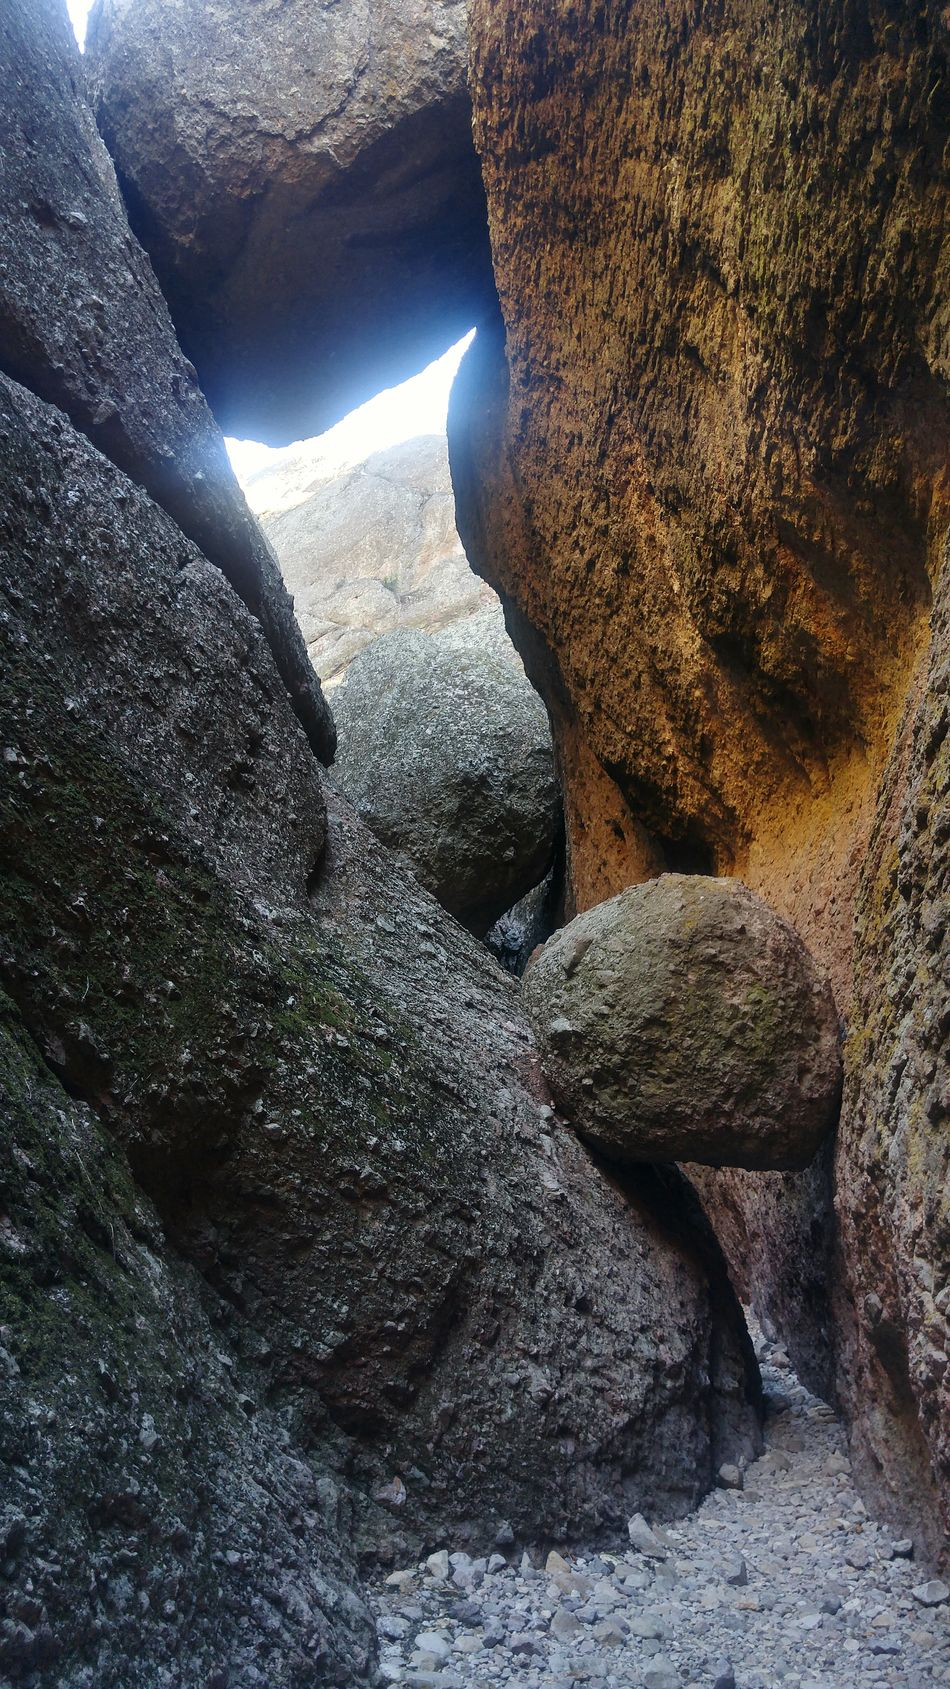 Shadow Sunlight Real People Close-up One Person Indoors  Men Day One Man Only People Rock - Object Rock Fallen Rocks Pinnacles National Park Trail Shadows & Lights Nature_collection Low Angle View California Amazing Nature No People, Boulder Check This Out! Rural Scene Shadows